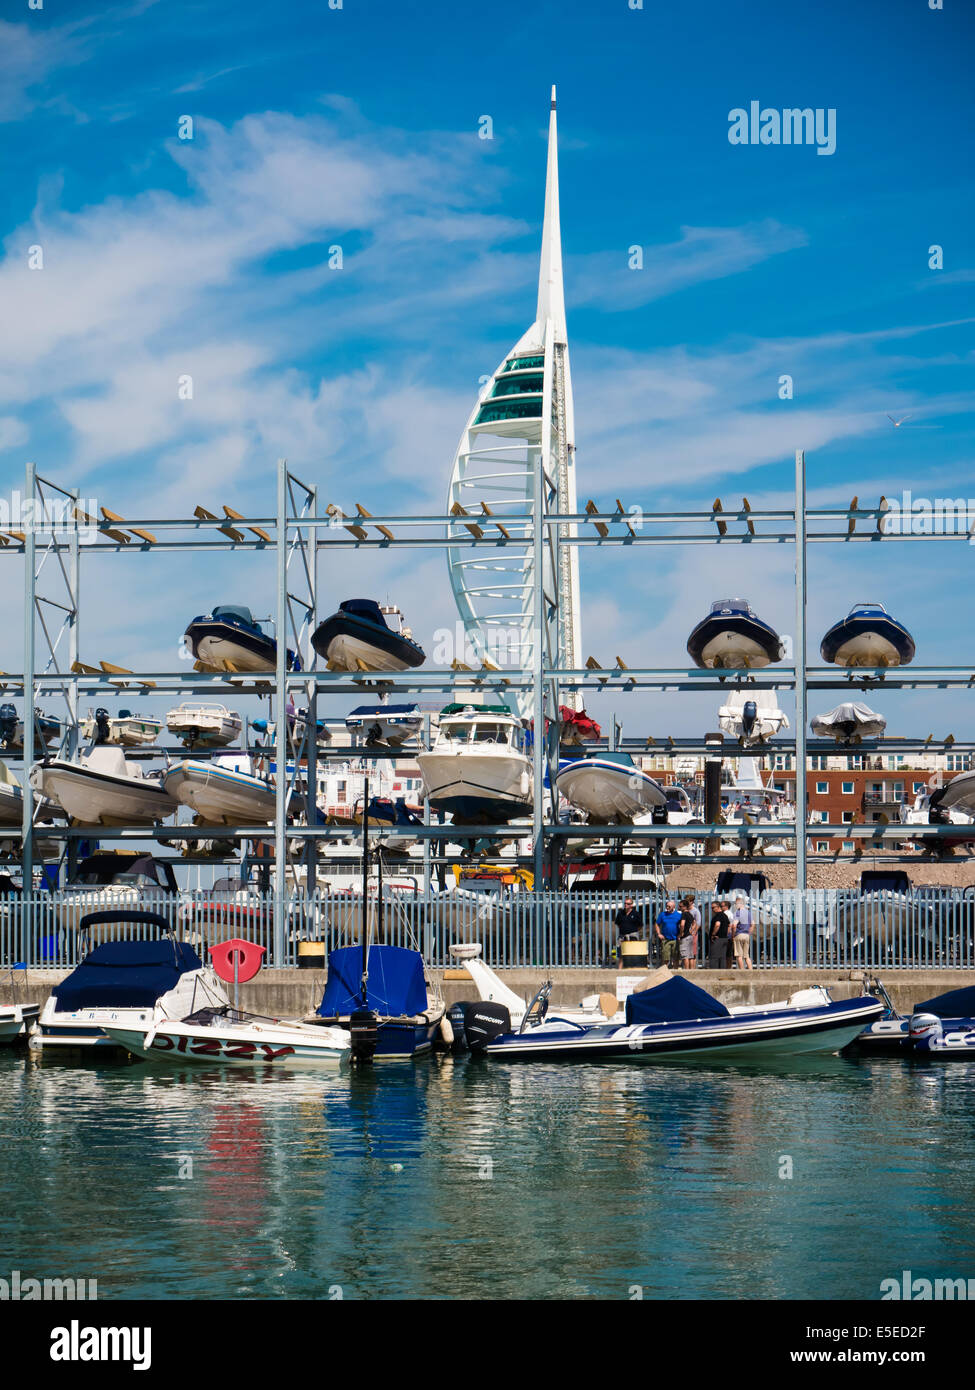 Multi storey boat rack holding Rigid inflatable boats at Camber Docks in Old Portsmouth. Stock Photo